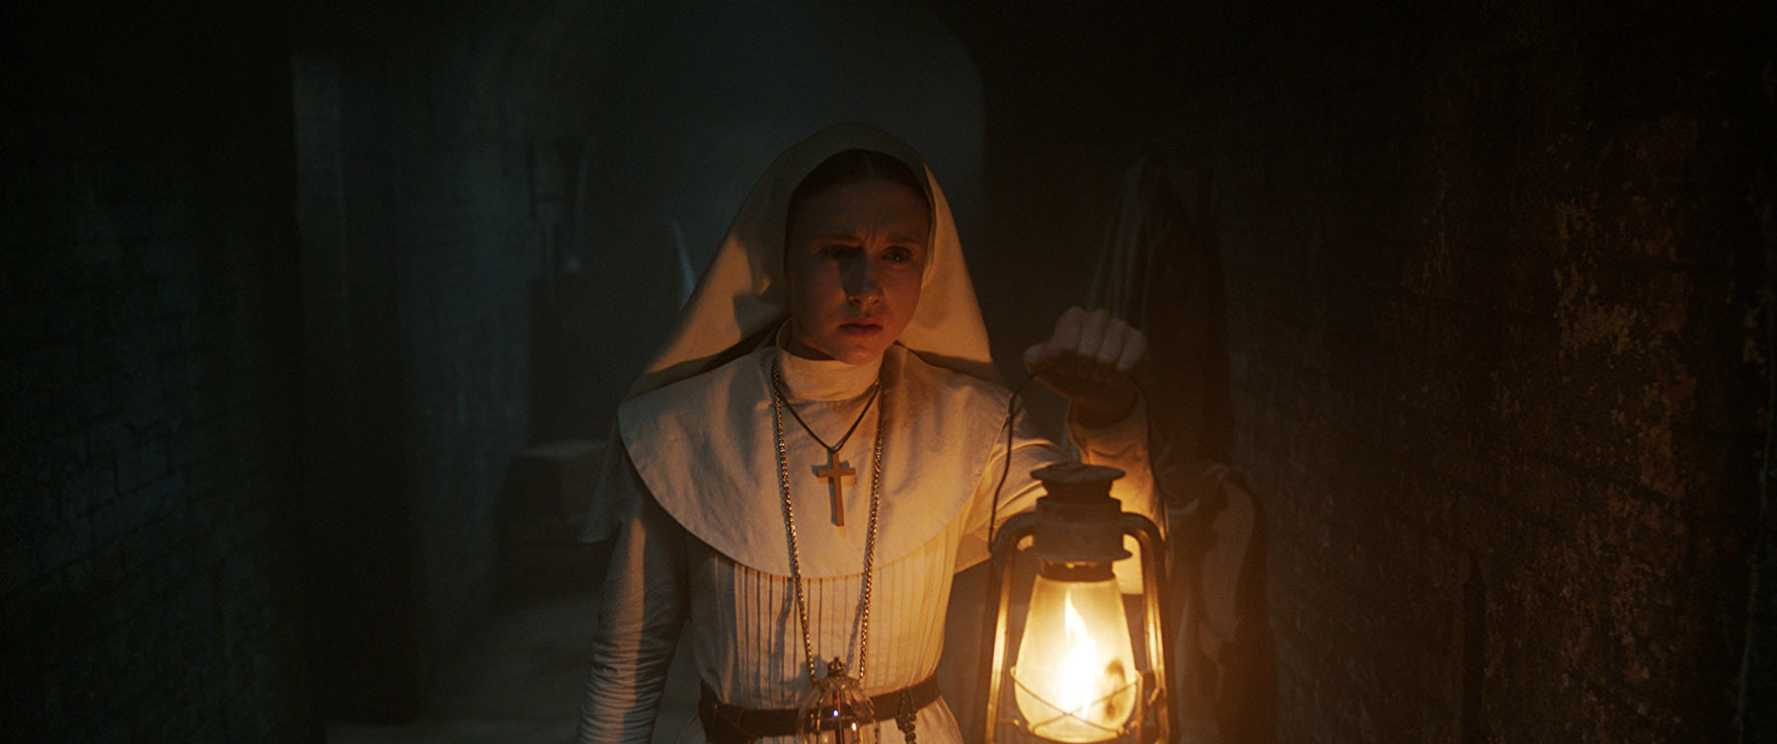 This is a still image from The Nun.